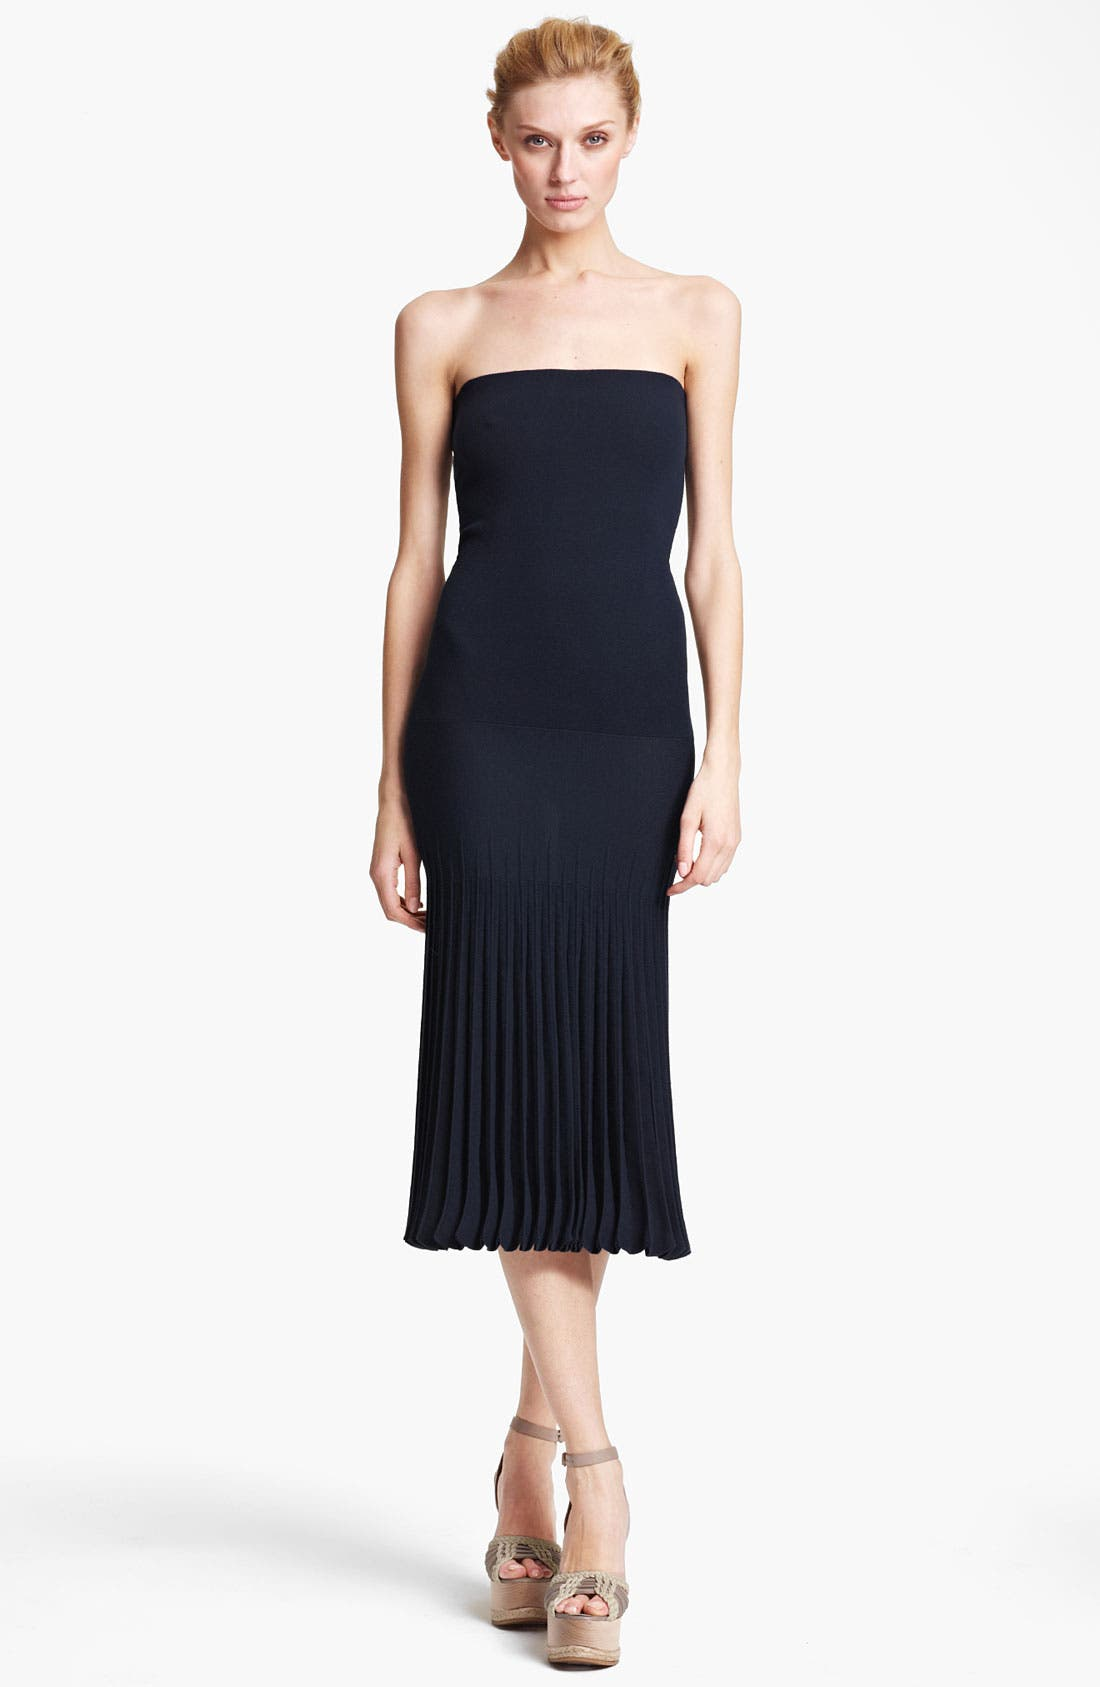 Main Image - Donna Karan Collection 'Infinity' Strapless Stretch Knit Dress